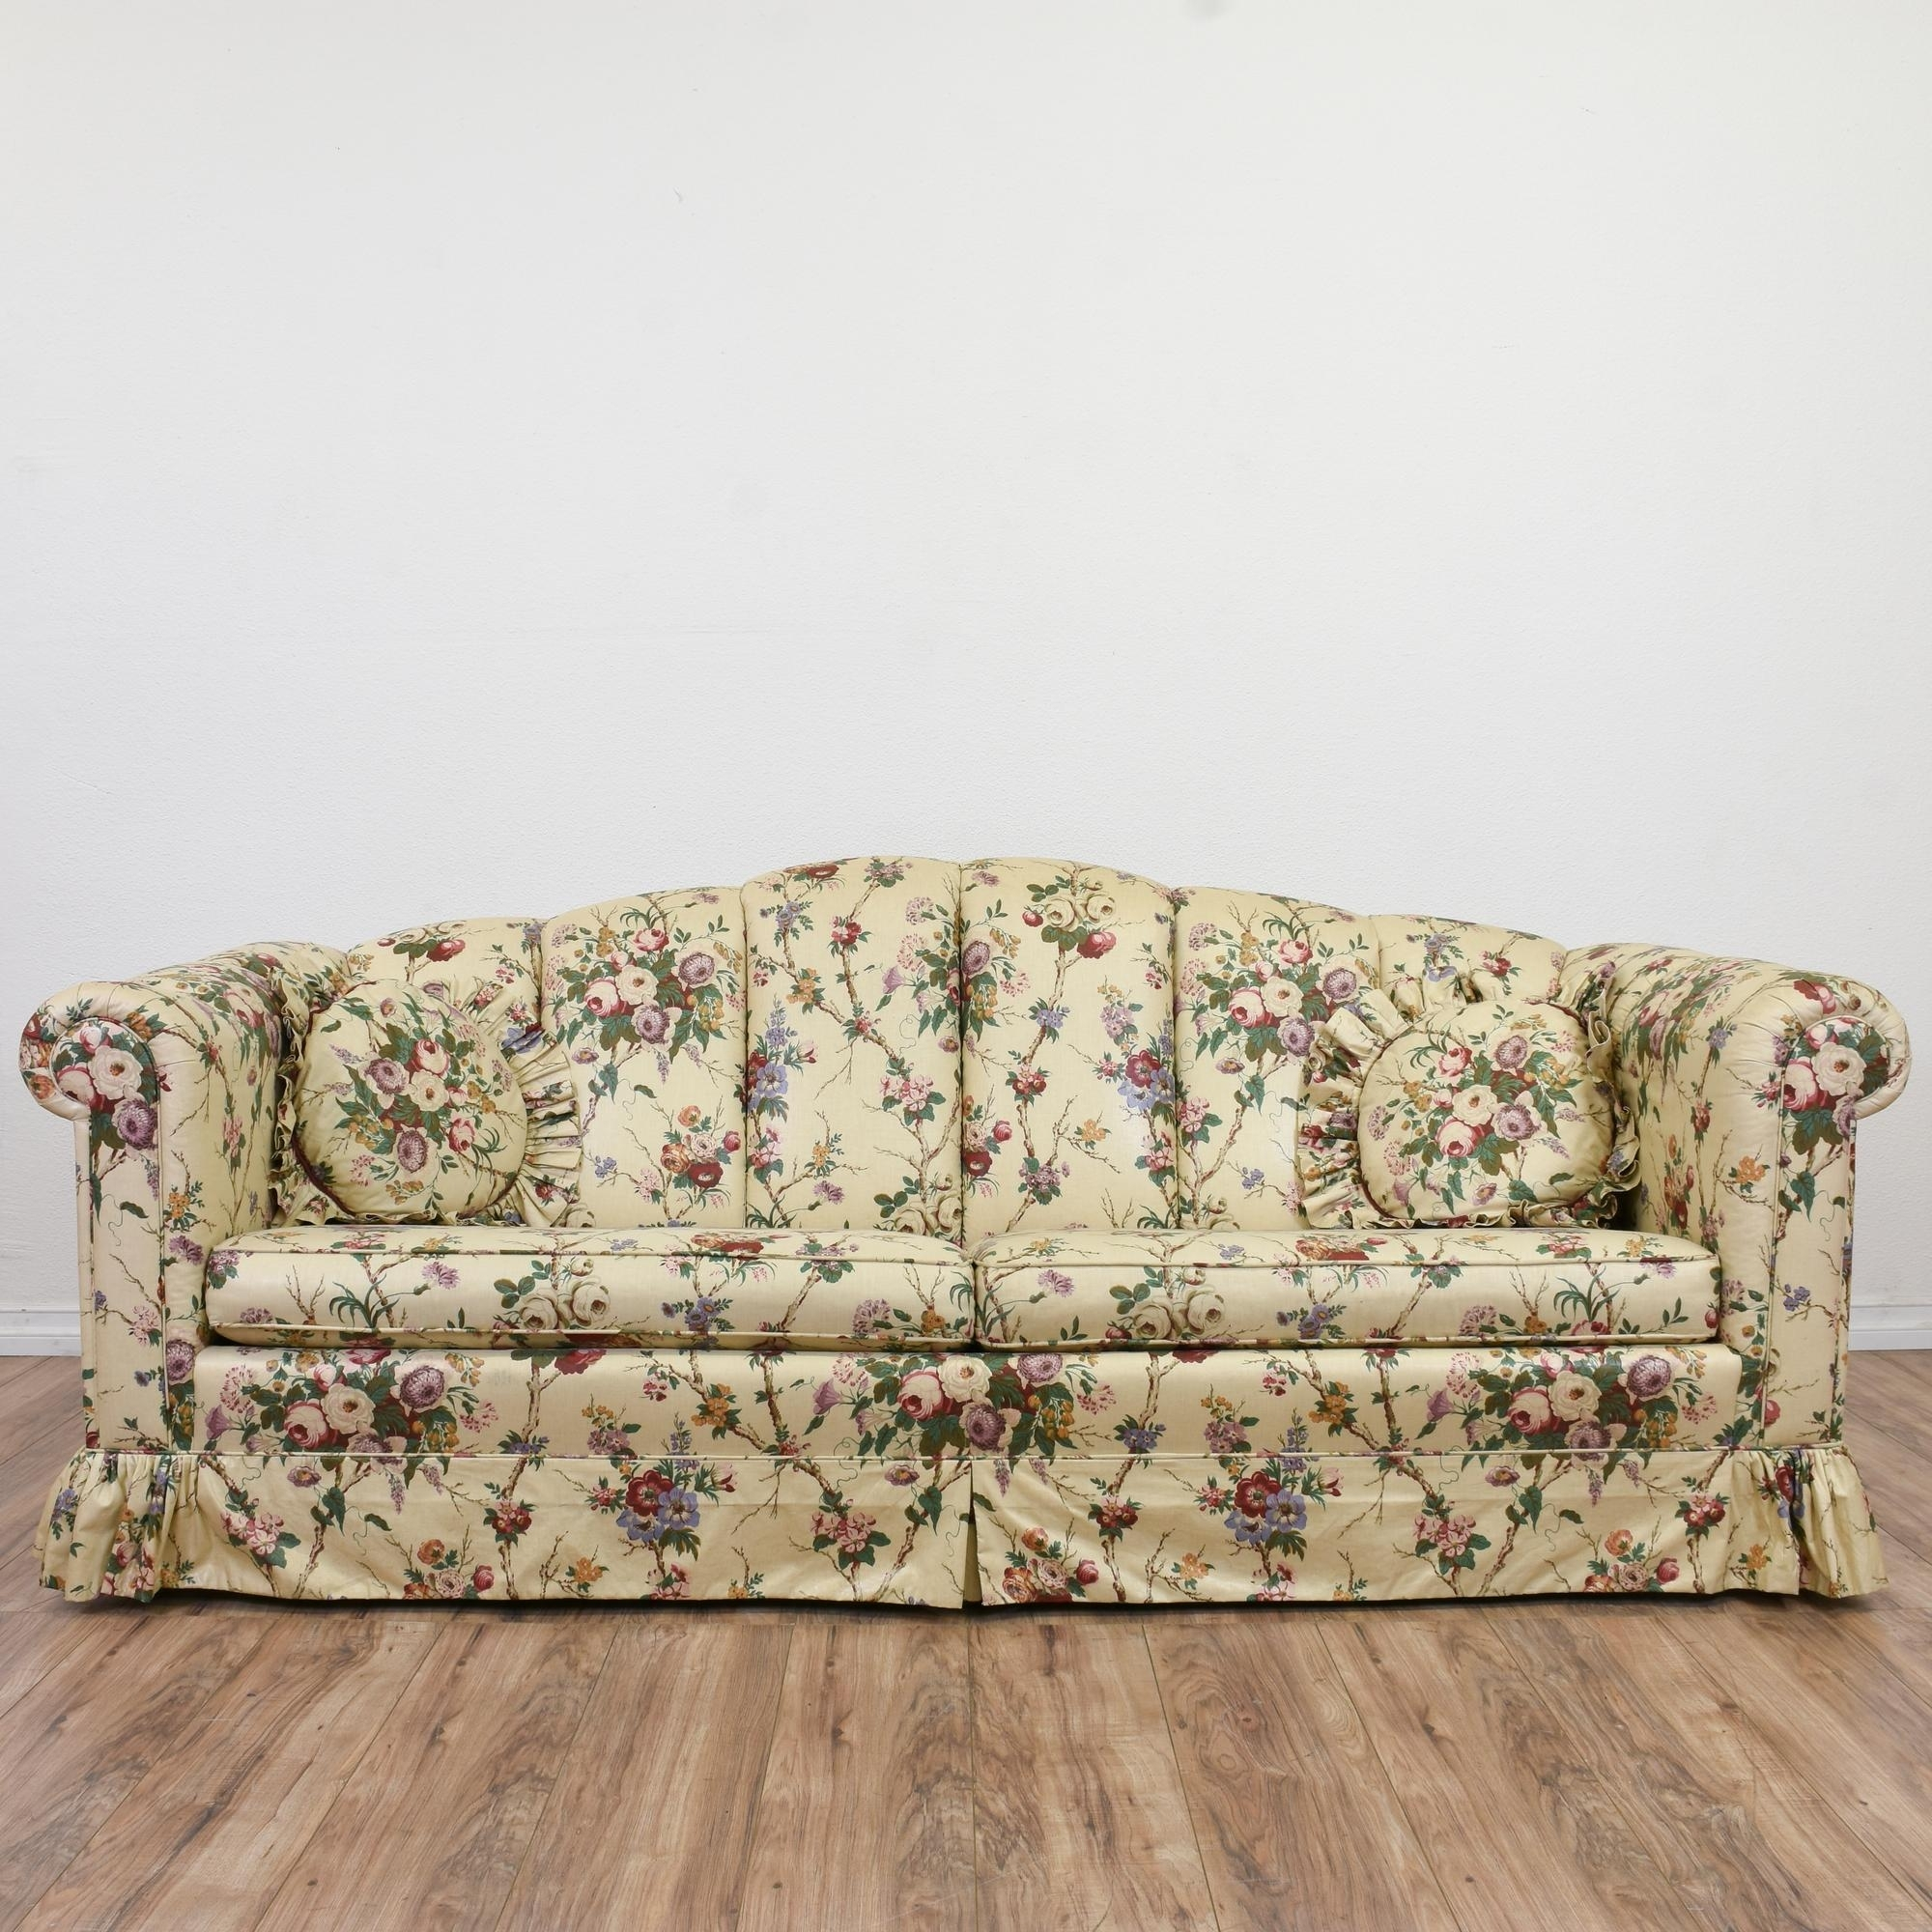 2019 Chintz Sofas And Chairs For This Sofa Is Upholstered In A Durable Off White Beige, Pink And (View 15 of 20)